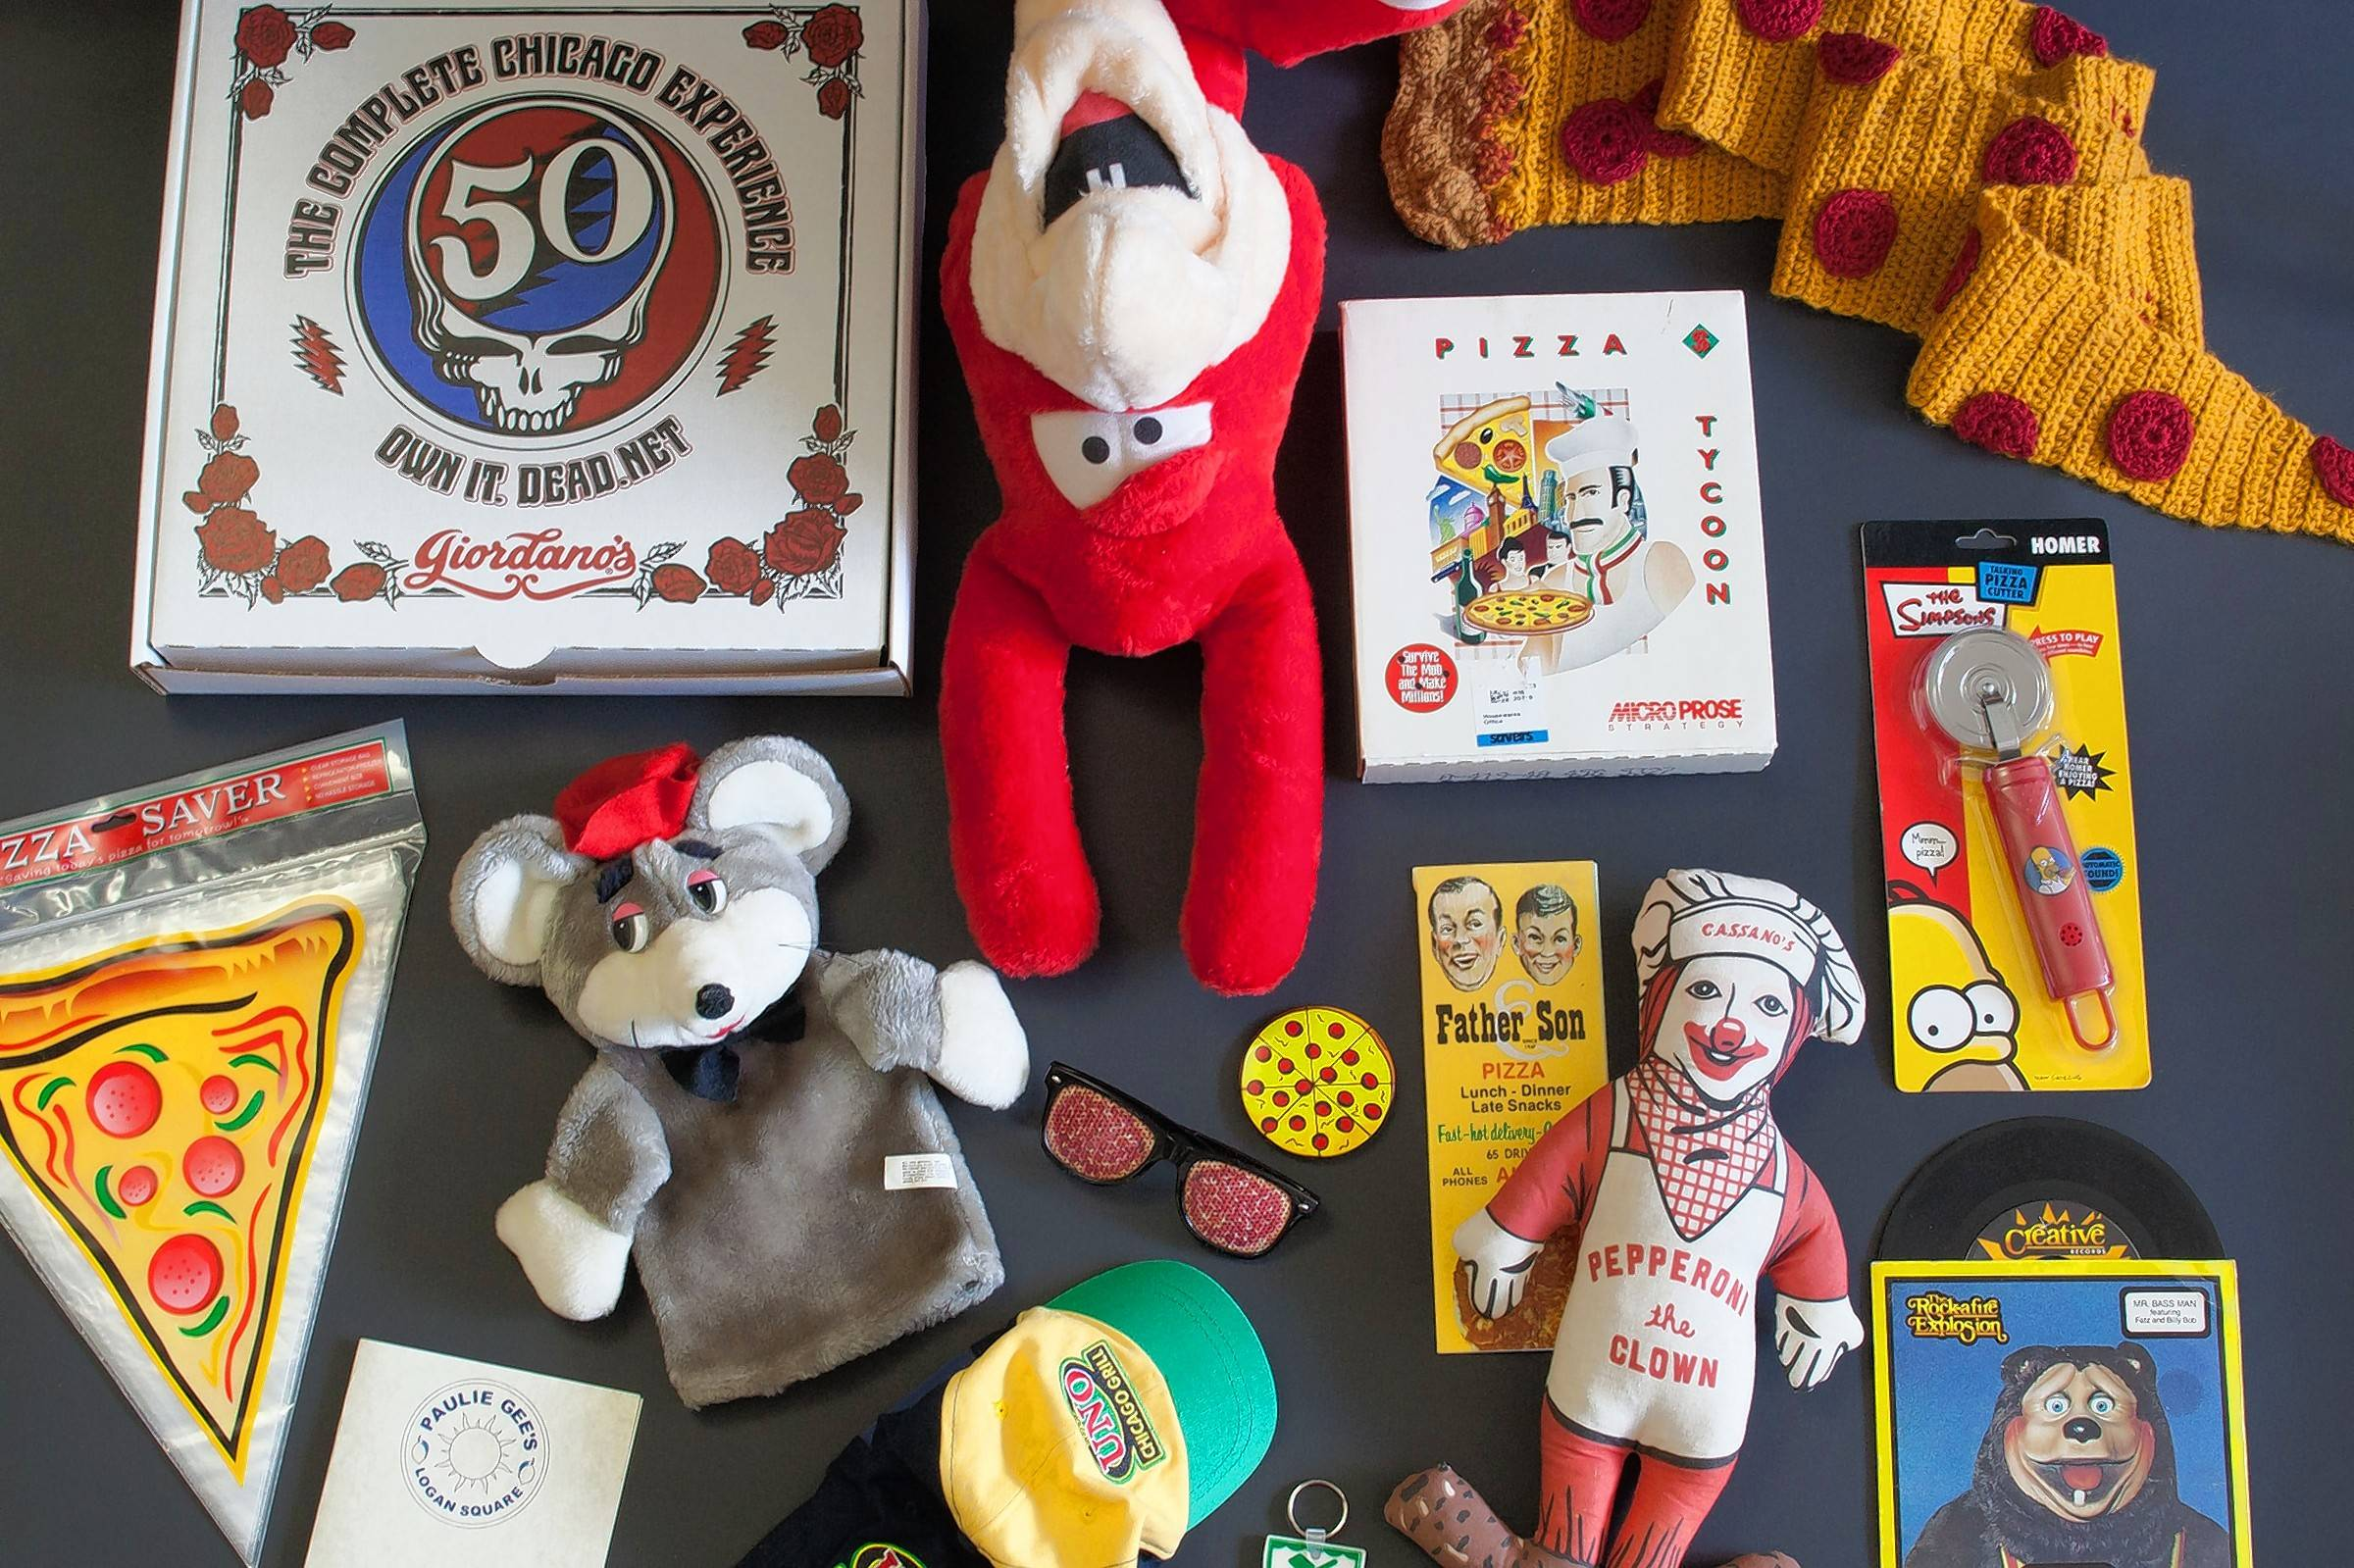 See kitschy items from the U.S. Pizza Museum at the Whistler Storefront Gallery in Chicago's Logan Square from Monday, July 18, through Sept. 18.